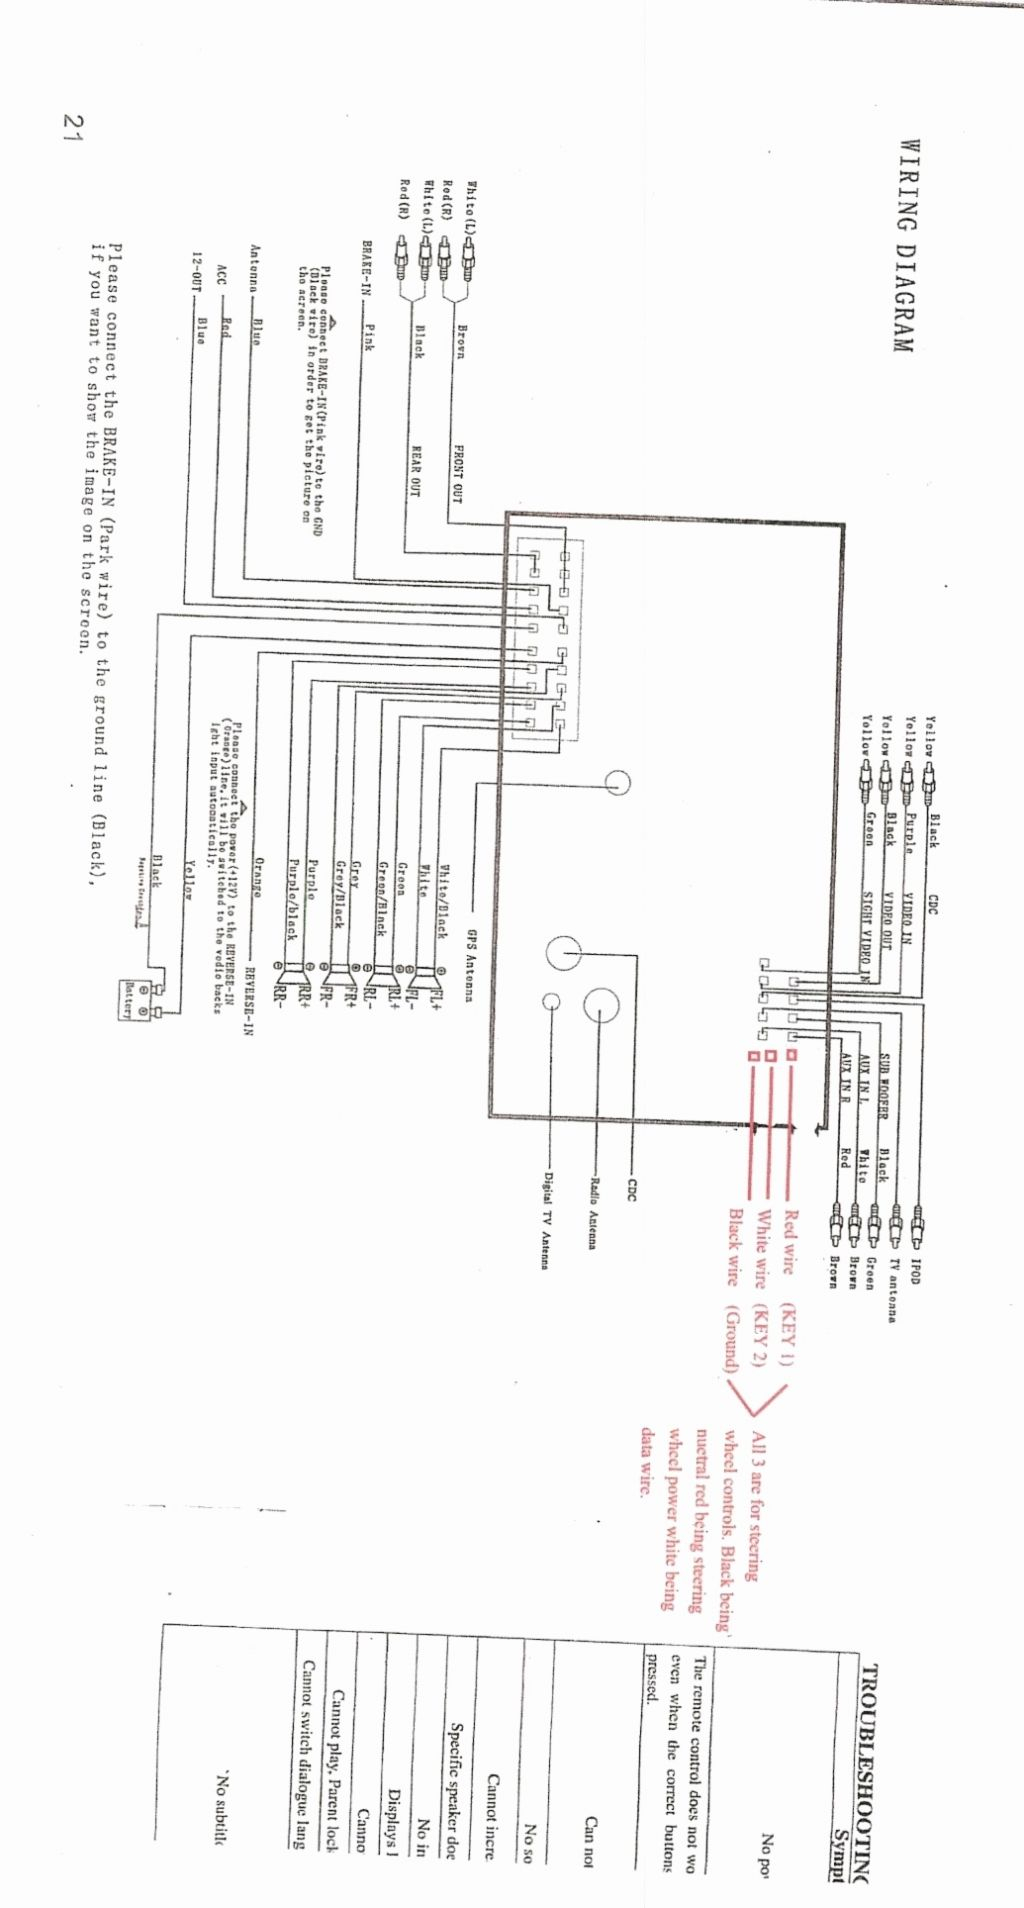 Lc Gmrc Lan 01 Wiring Diagram Solutions Harness Aess Gmos 07 Circuit And Hub Metra Interface